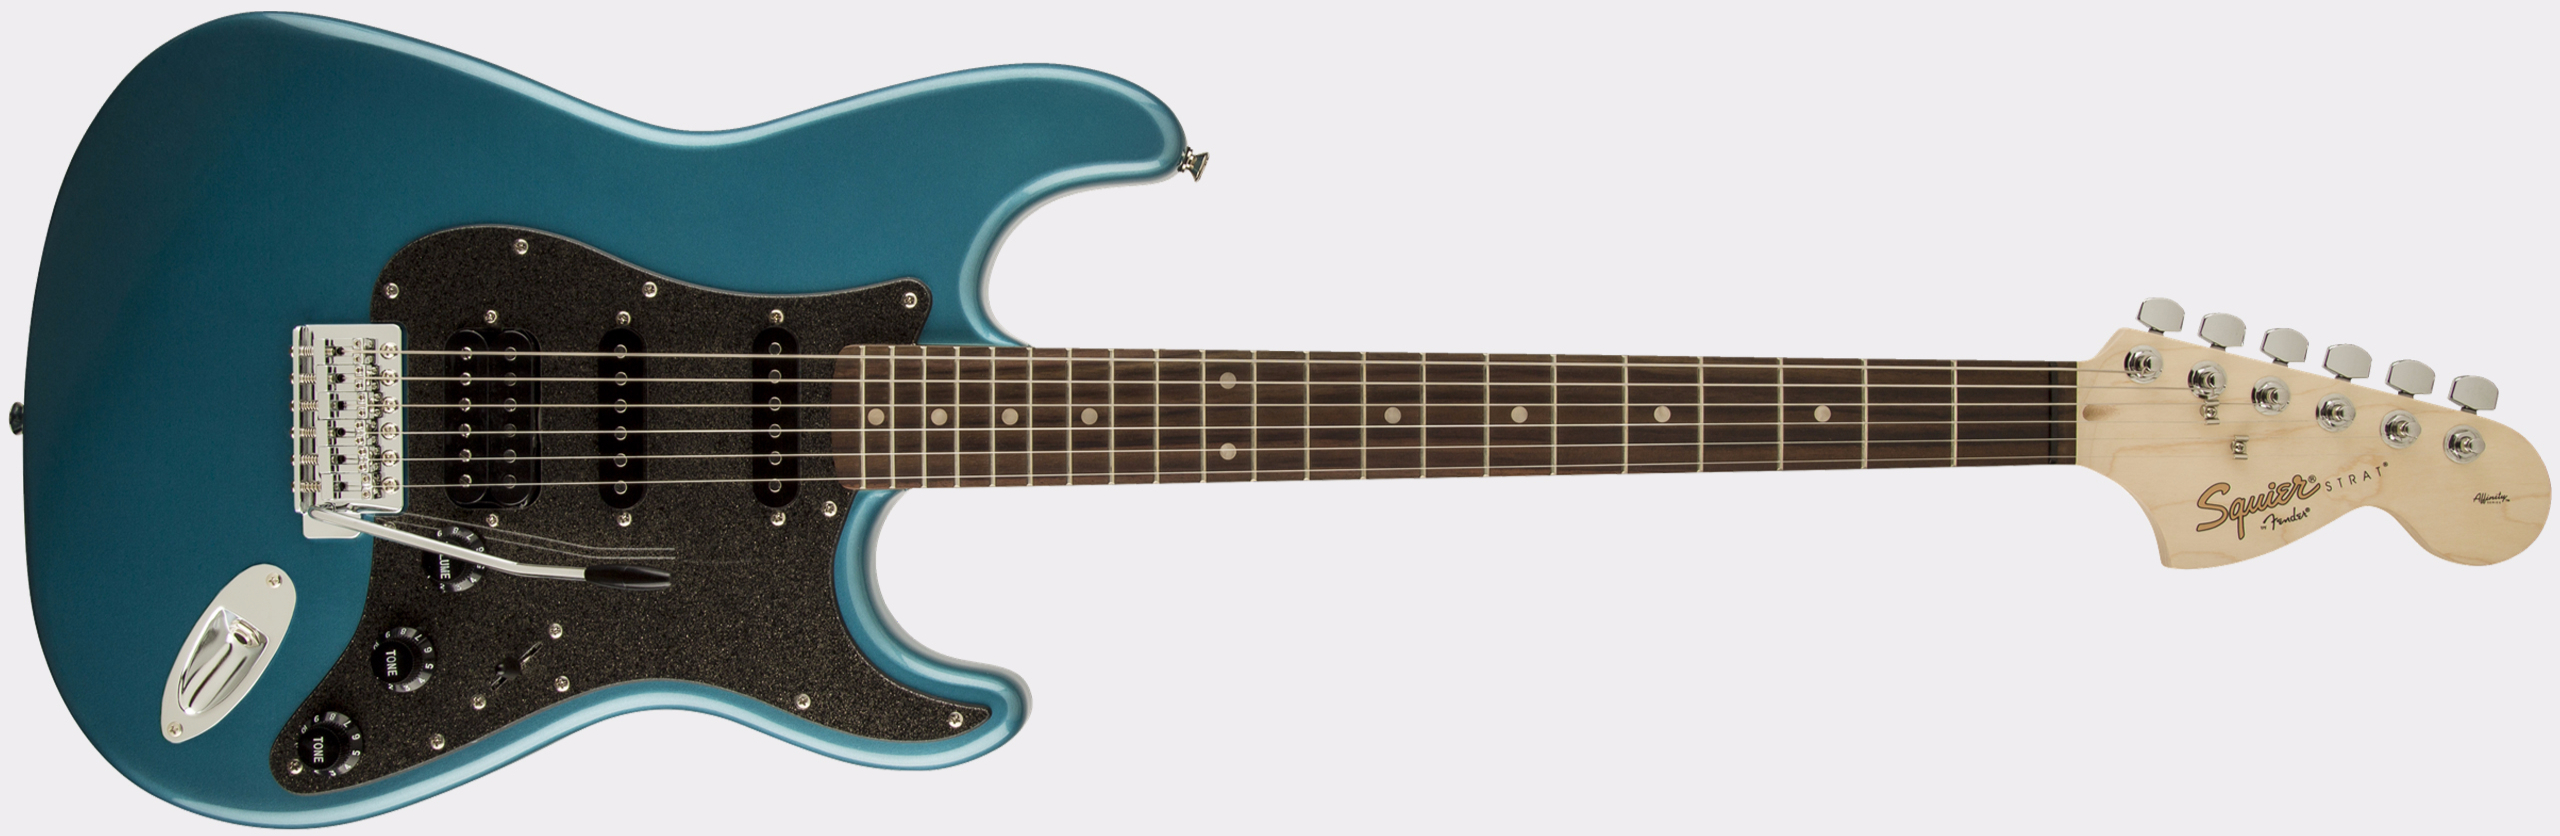 SQUIER Affinity Series Stratocaster HSS RW Lake Placid Blue